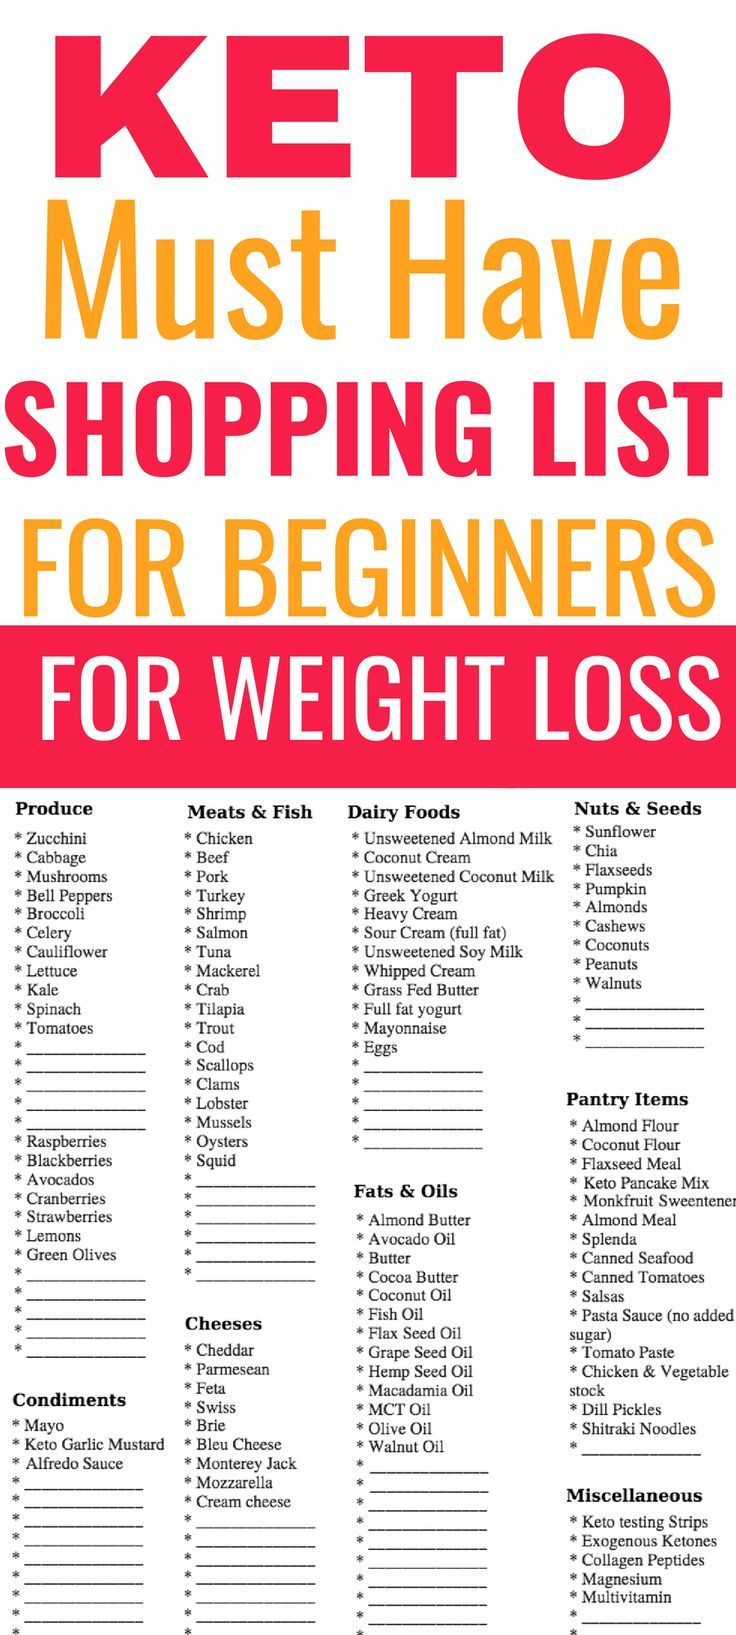 Ketogenic Shopping List For Beginners (With images) No